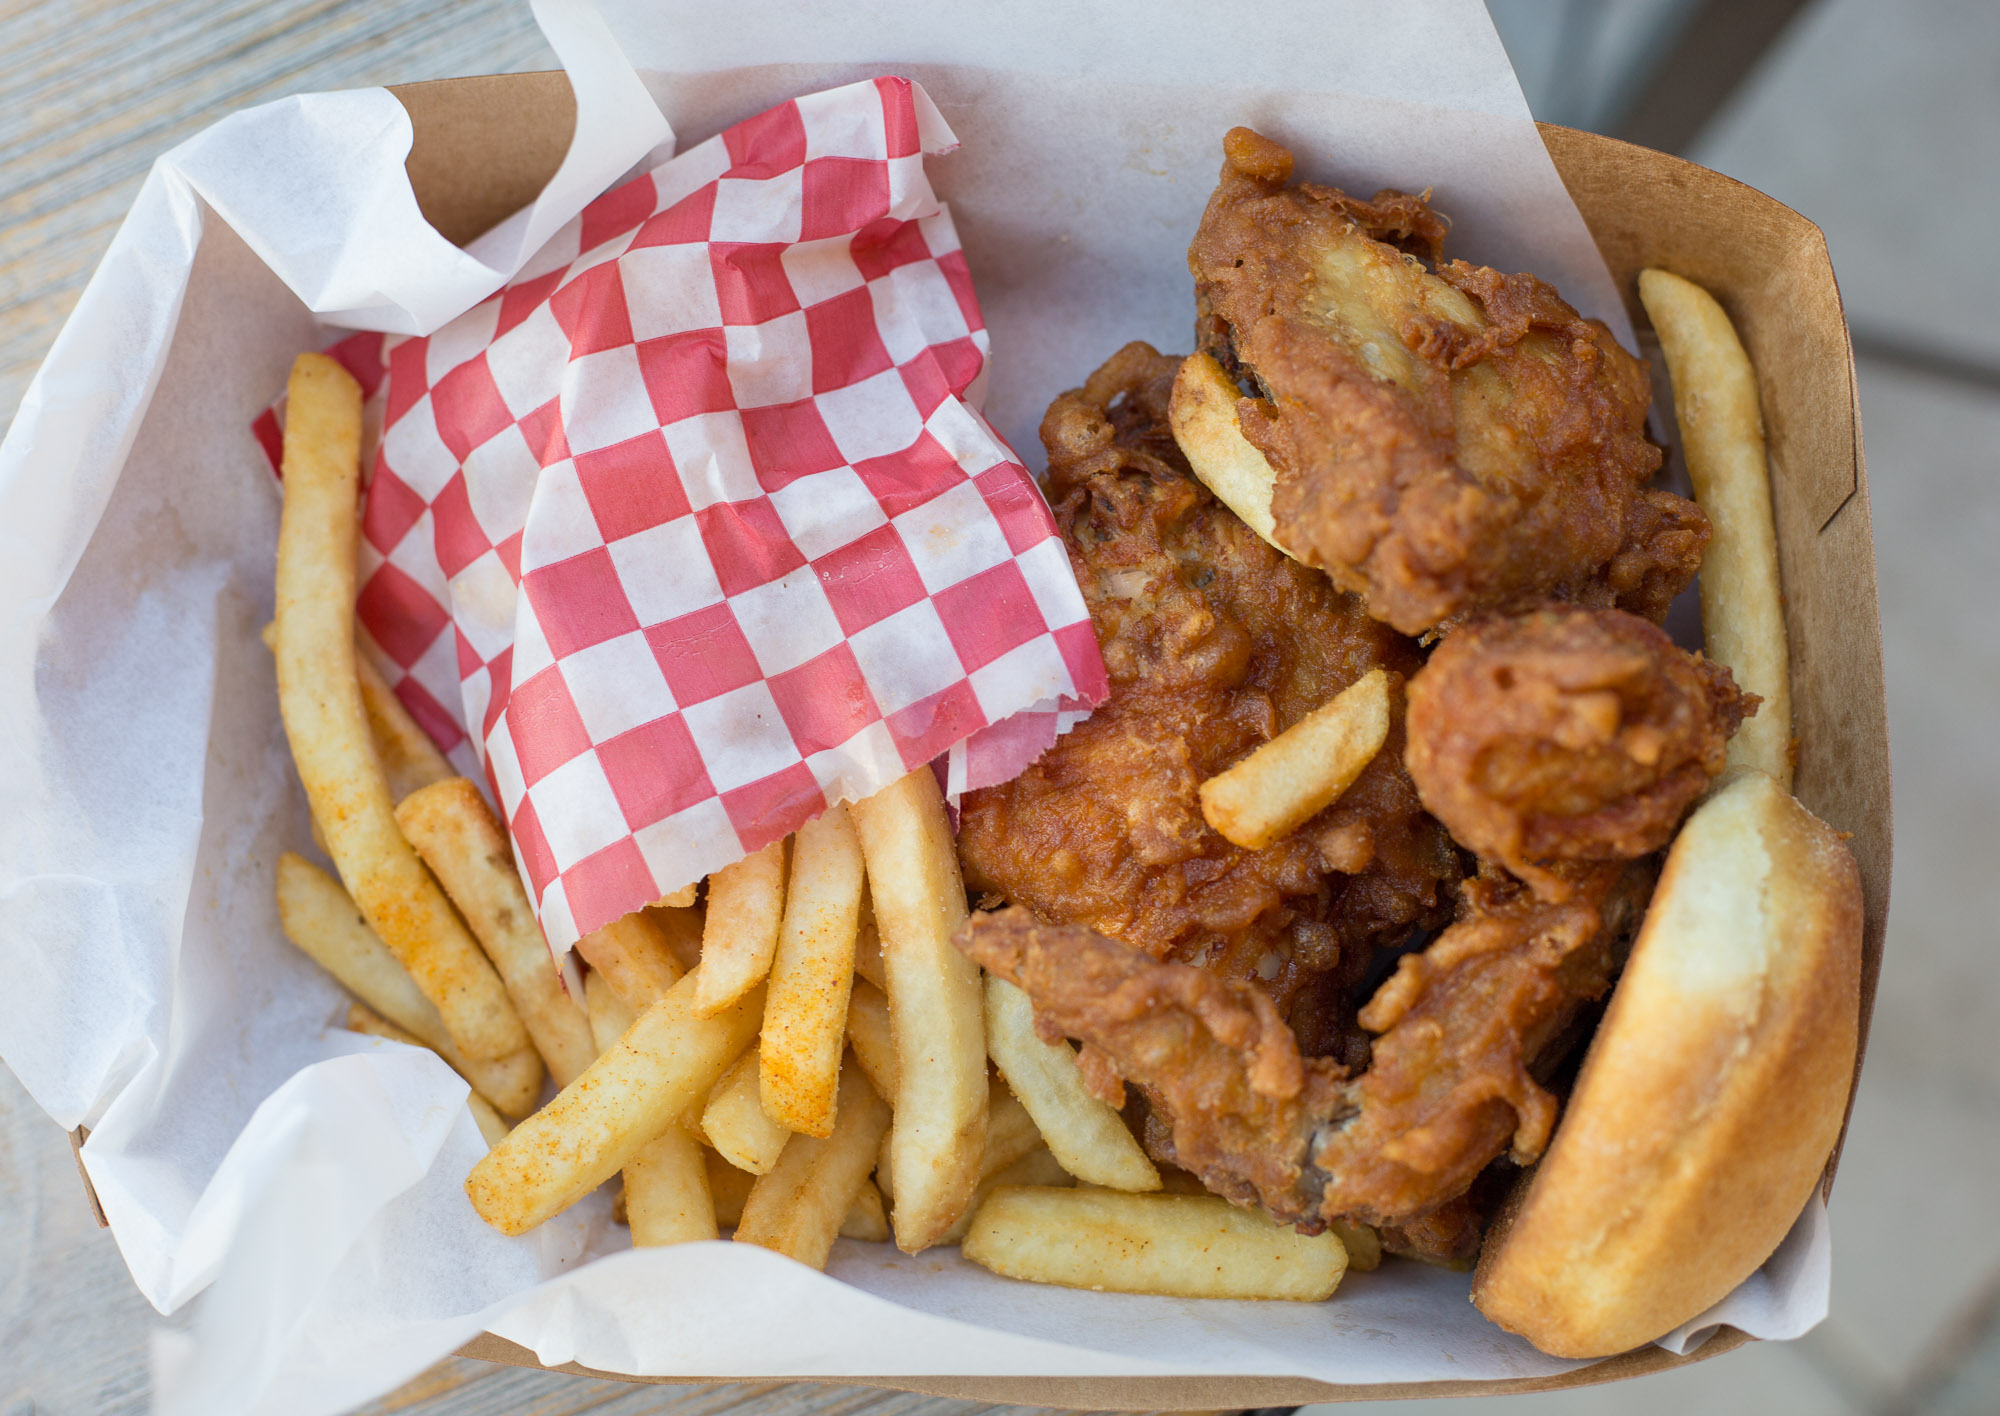 Honey's Kettle fried chicken in Culver City, Calfiornia